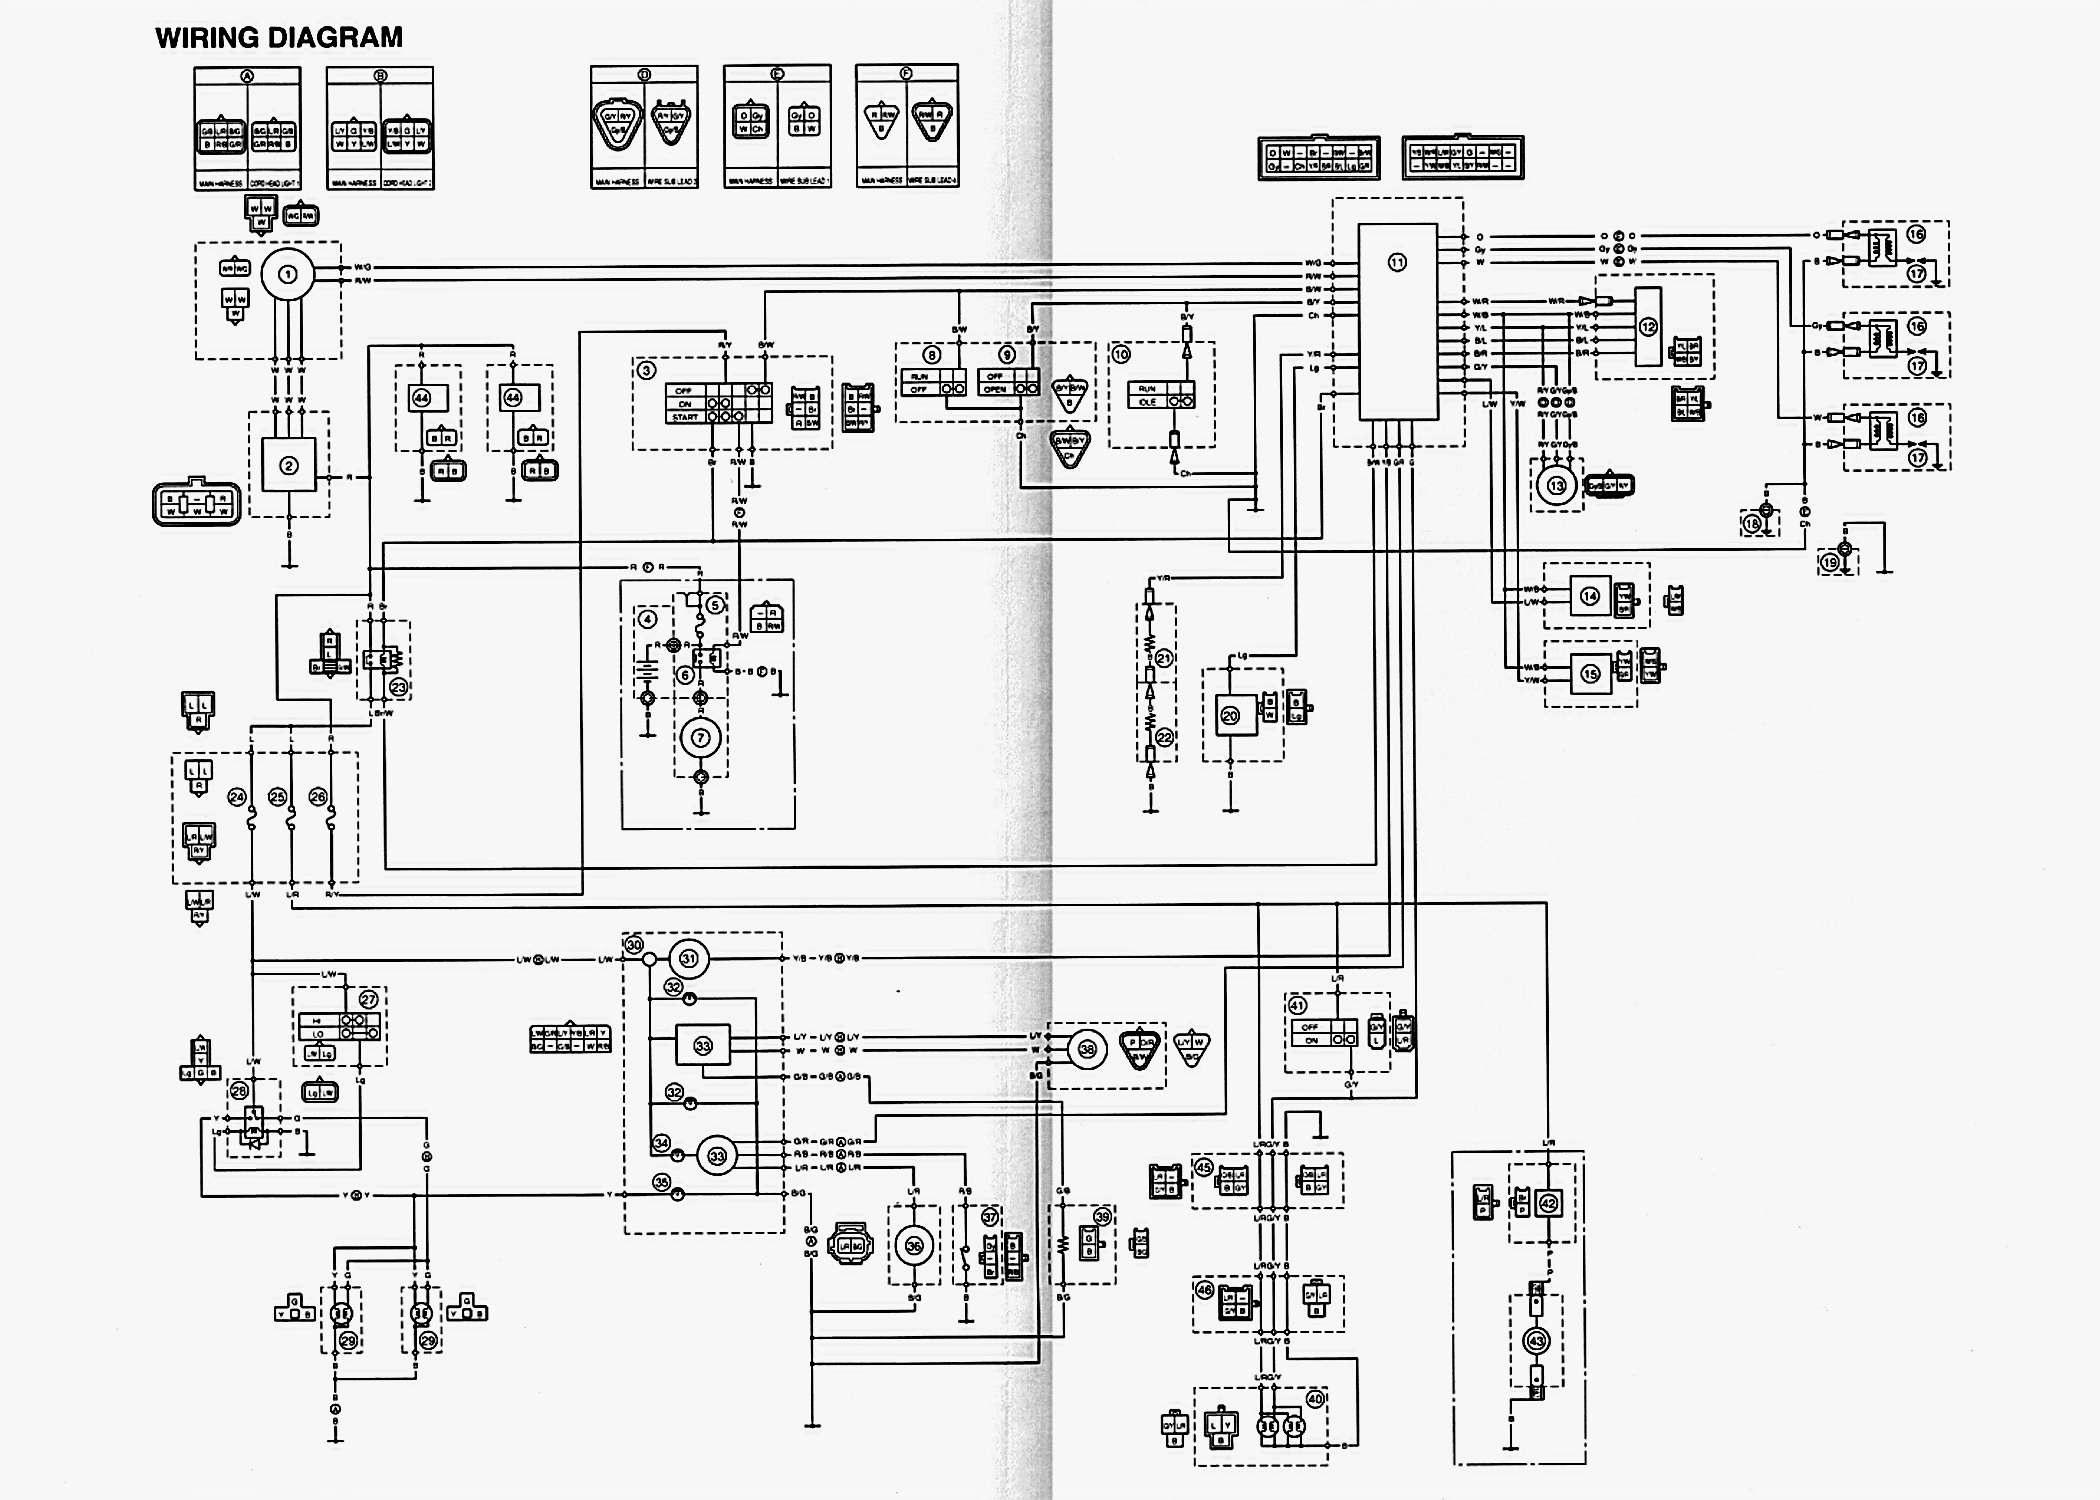 Yamaha Viper 700 Wiring Diagram • Wiring Diagram For Free